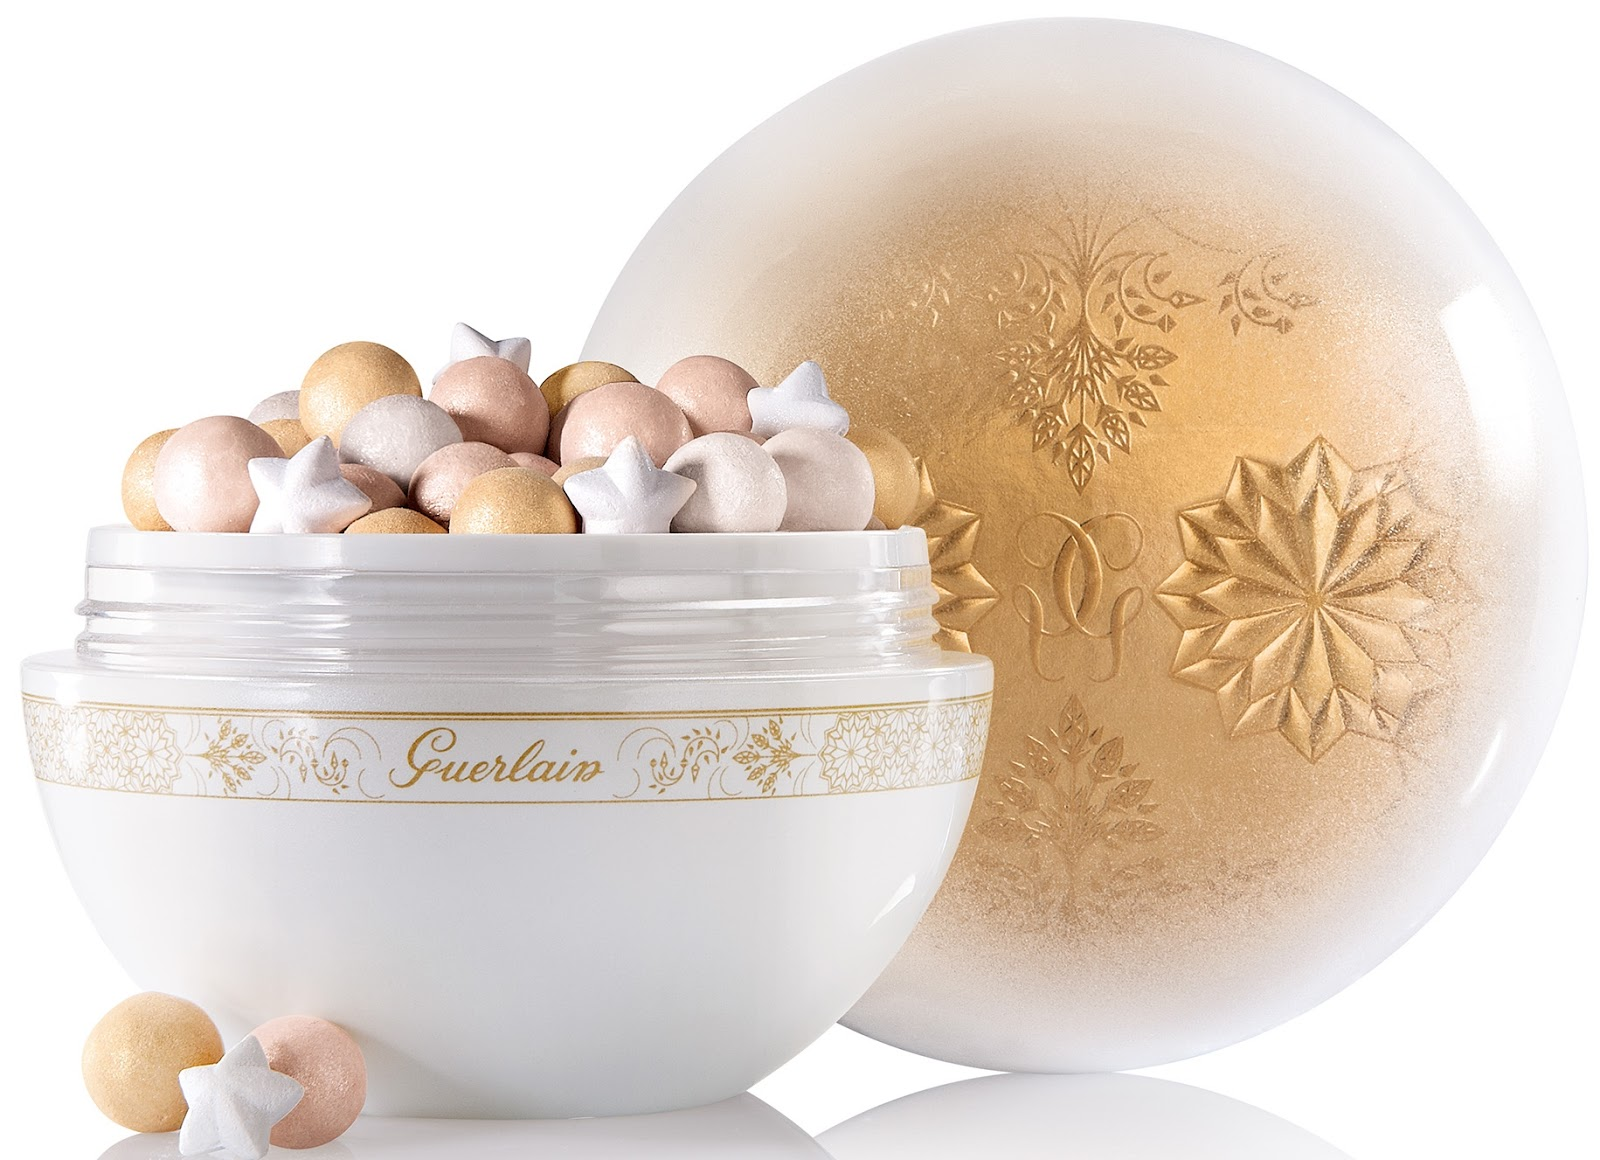 Guerlain Meteorites Powder Neiges et Merveilles Christmas Collection 2015/2016